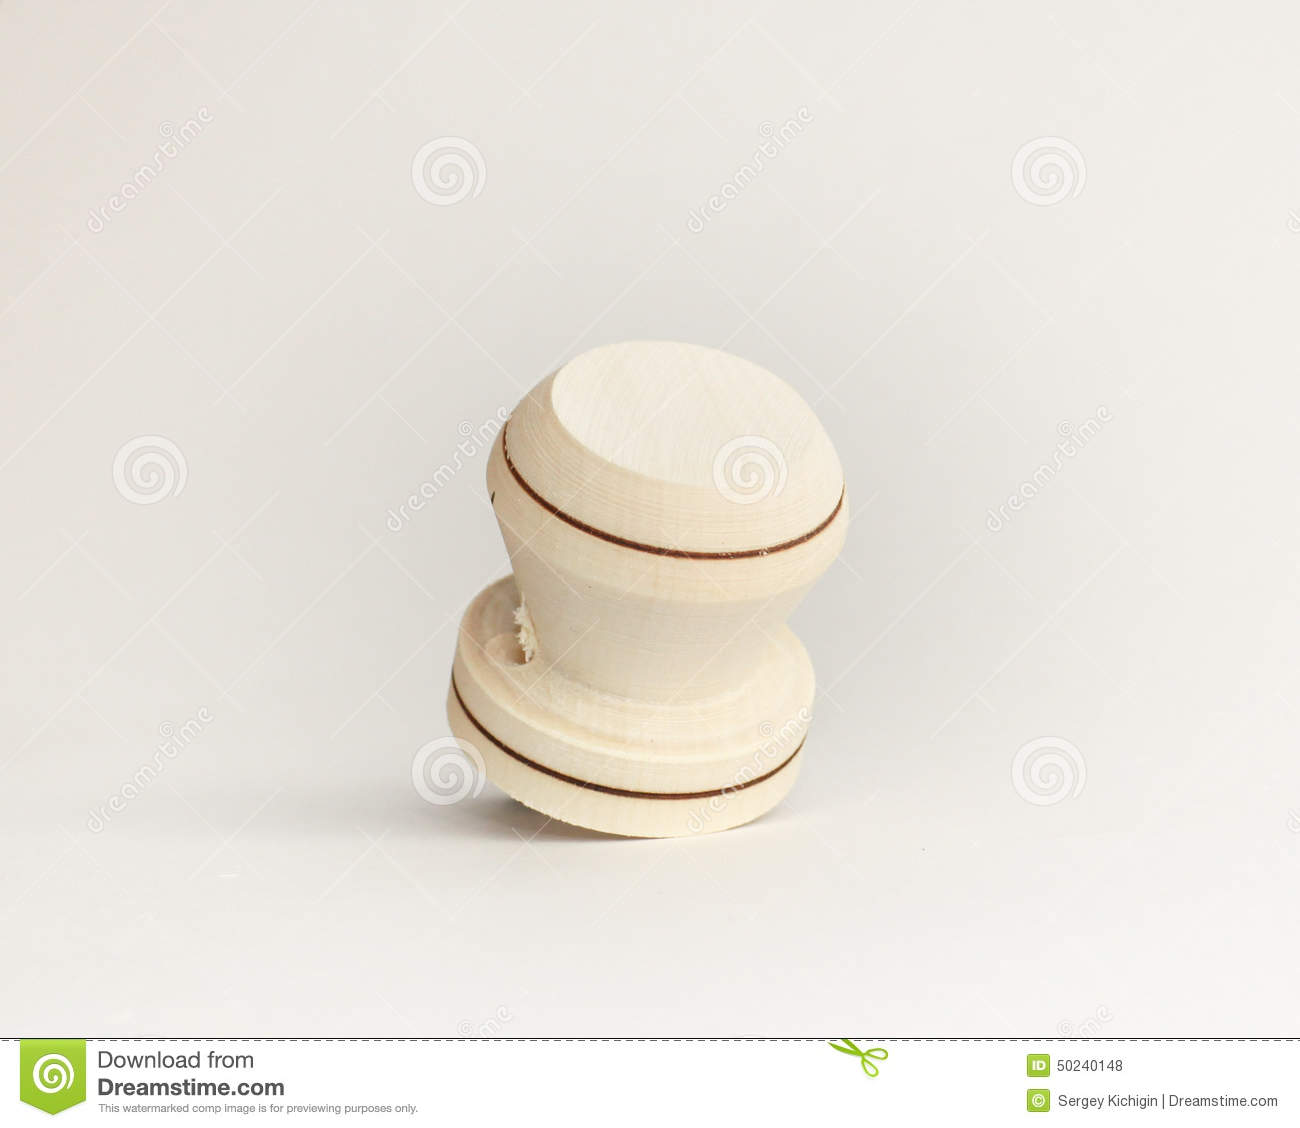 Wooden door handle on a white background isolate